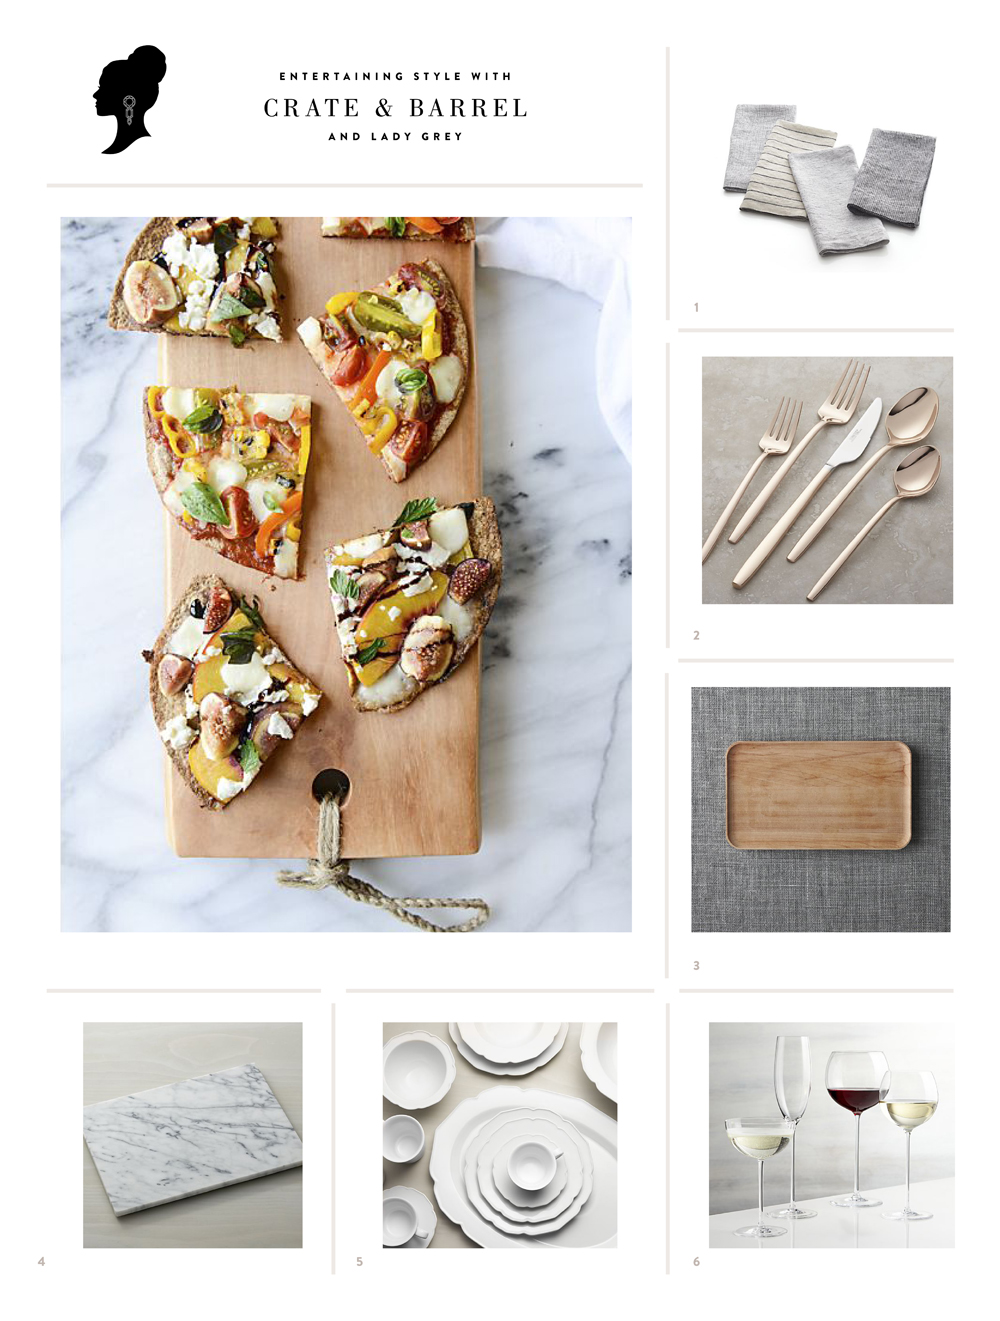 Crate and barrel friends and family - Crate Barrel Entertaining Style With Crate Barrel